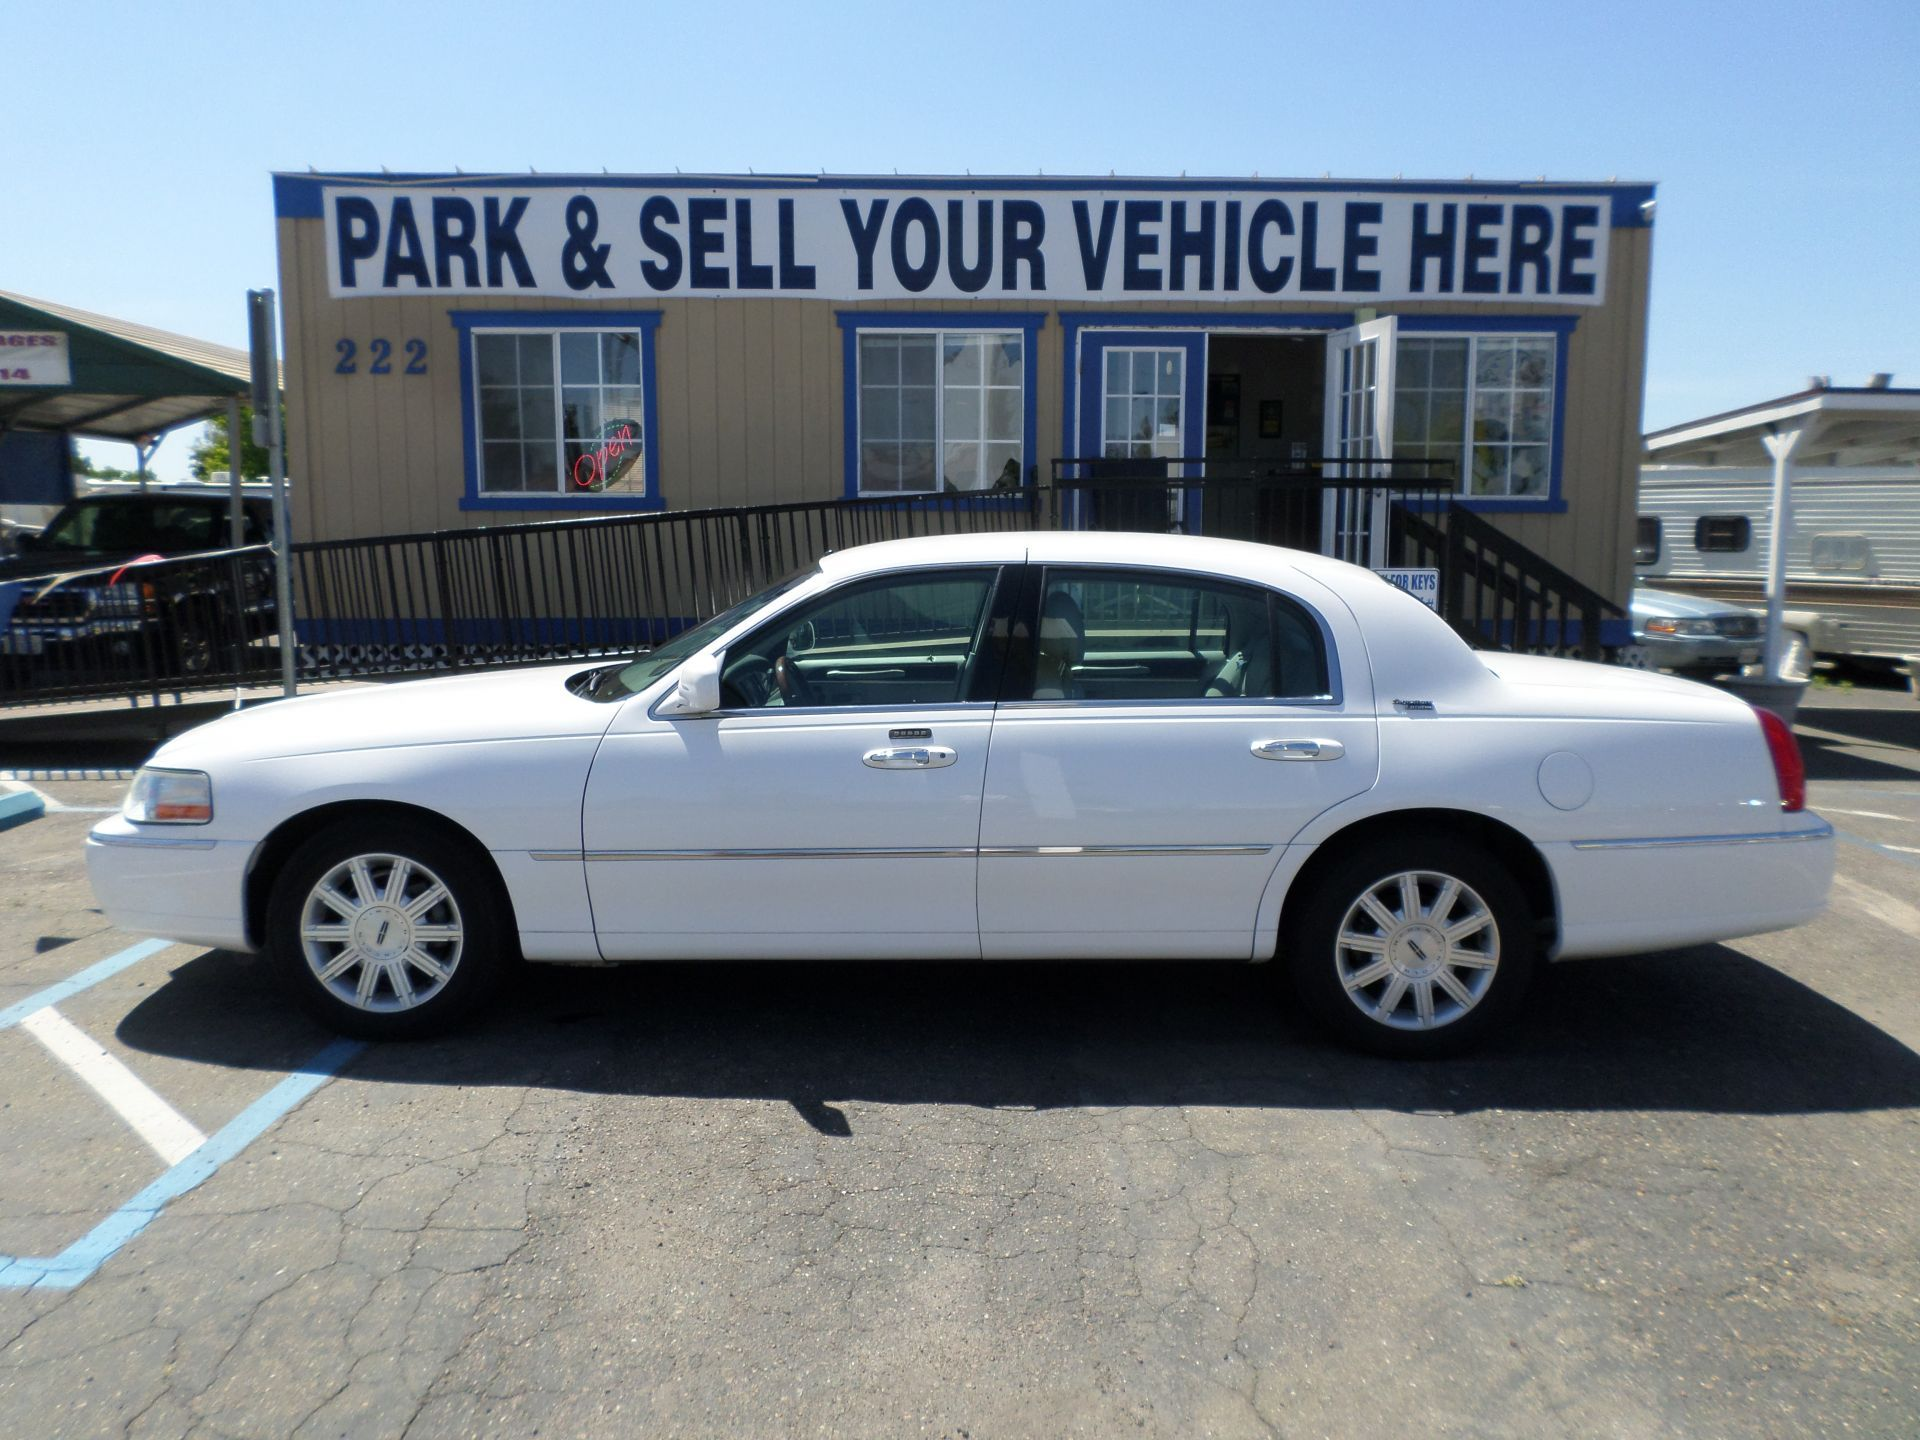 Car For Sale 2006 Lincoln Town Car Signature Limited In Lodi Stockton Ca Lincoln Town Car 2006 Lincoln Town Car Cars For Sale